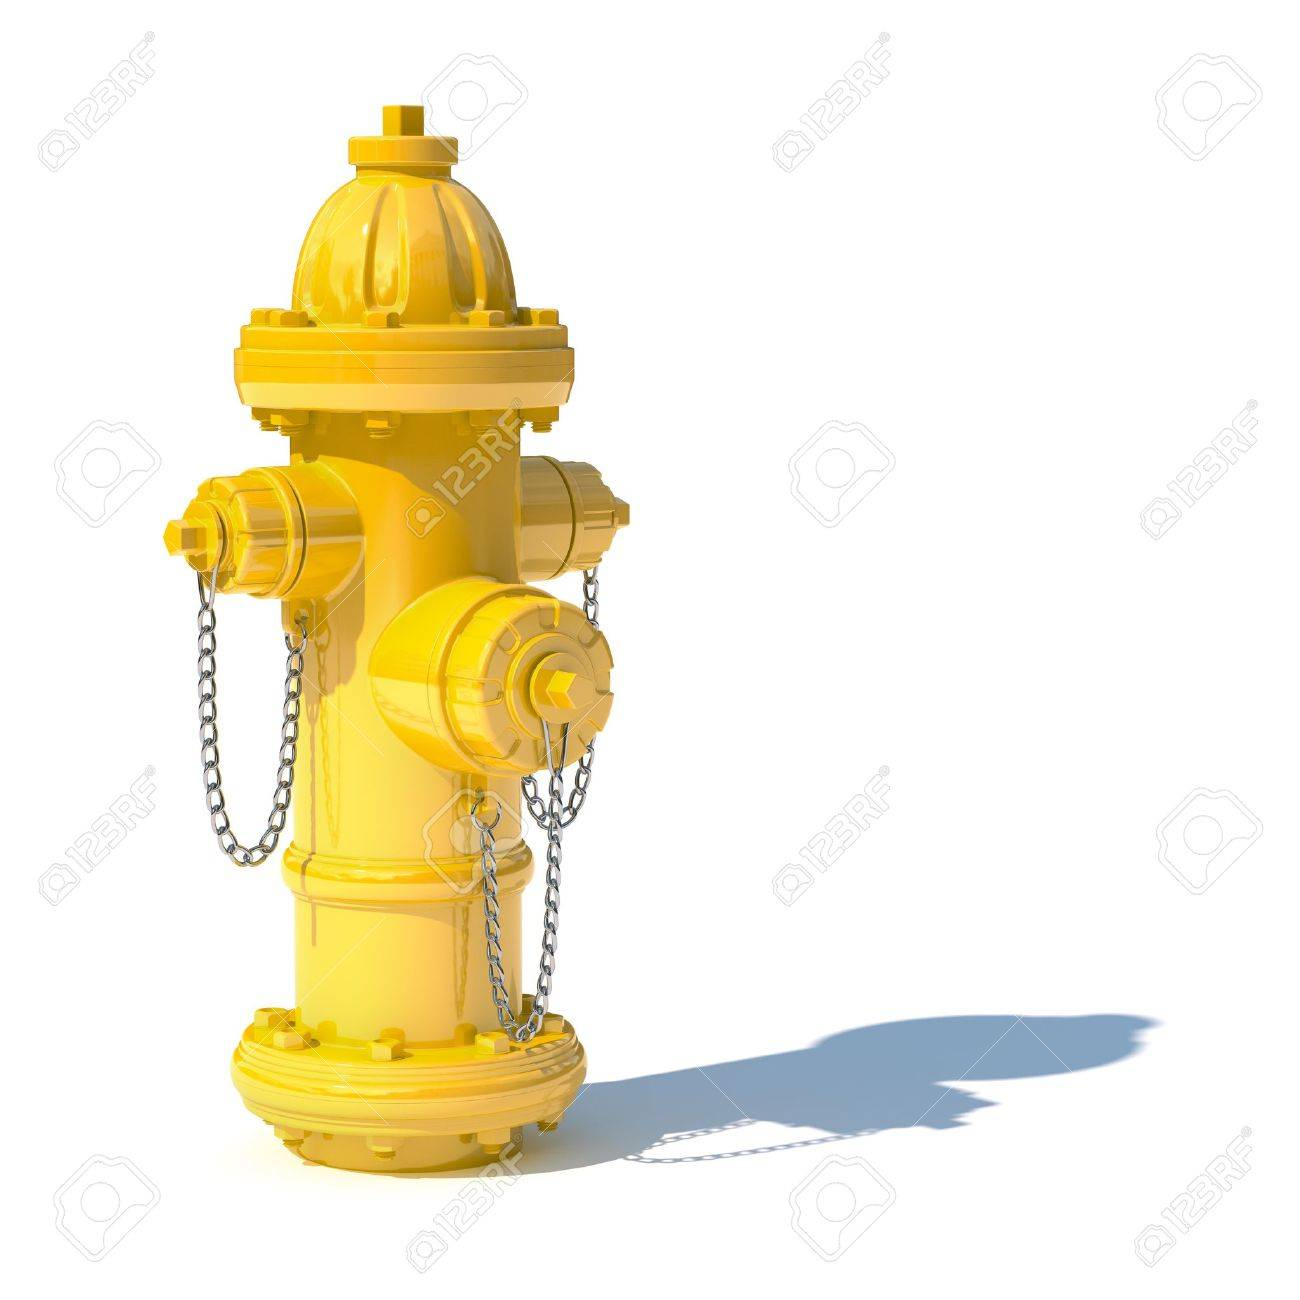 1300x1300 3d Illustration Of Yellow Fire Hydrant Isolated On White